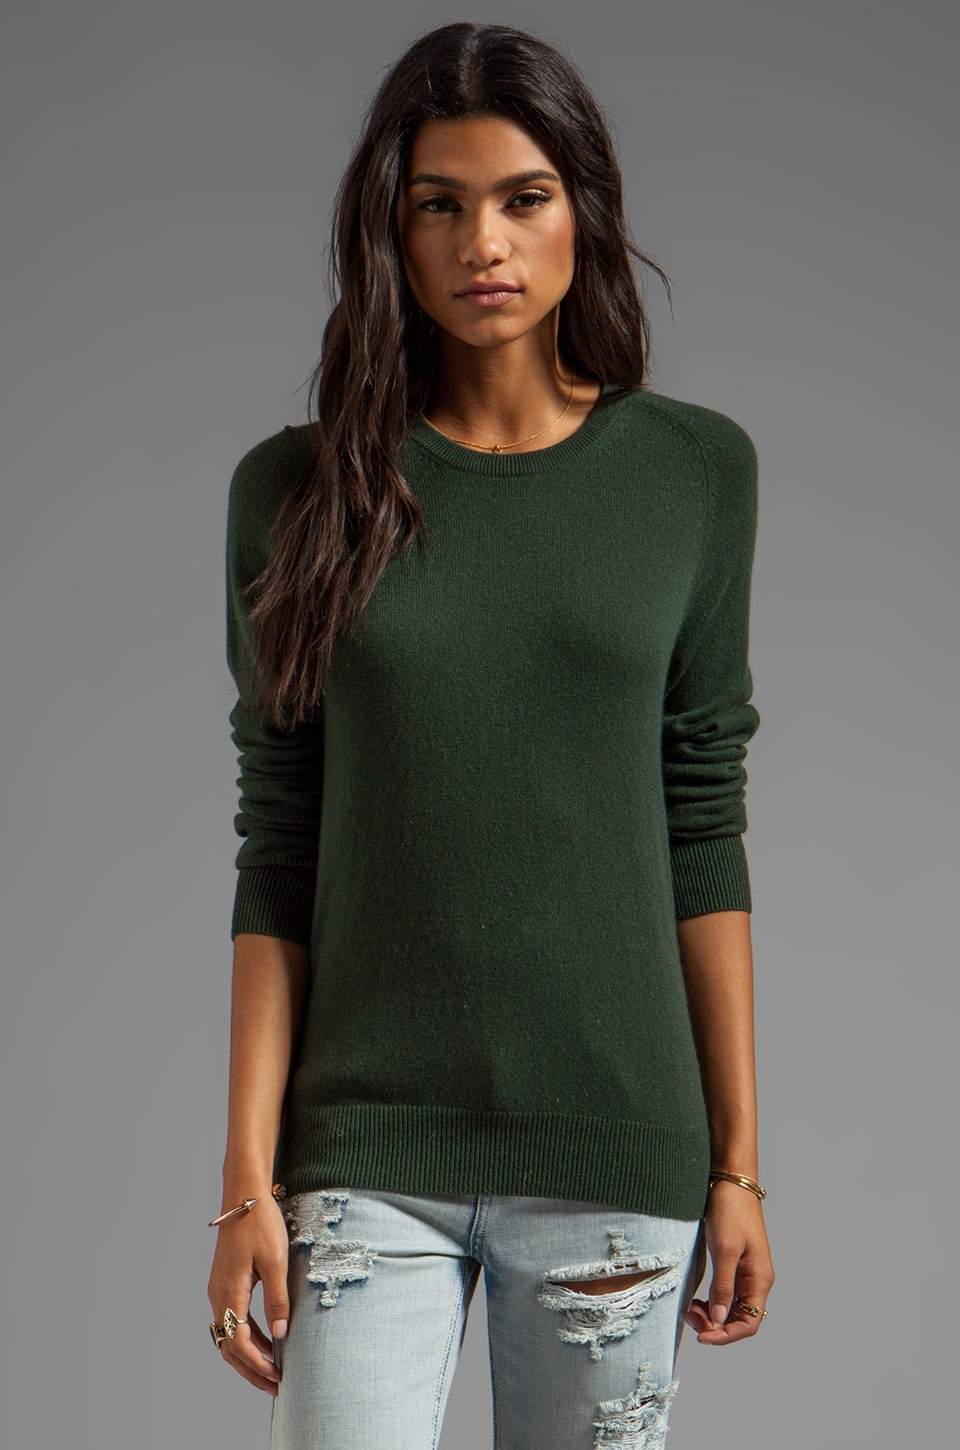 Equipment Sloane Crew Neck Sweater in Dark Army